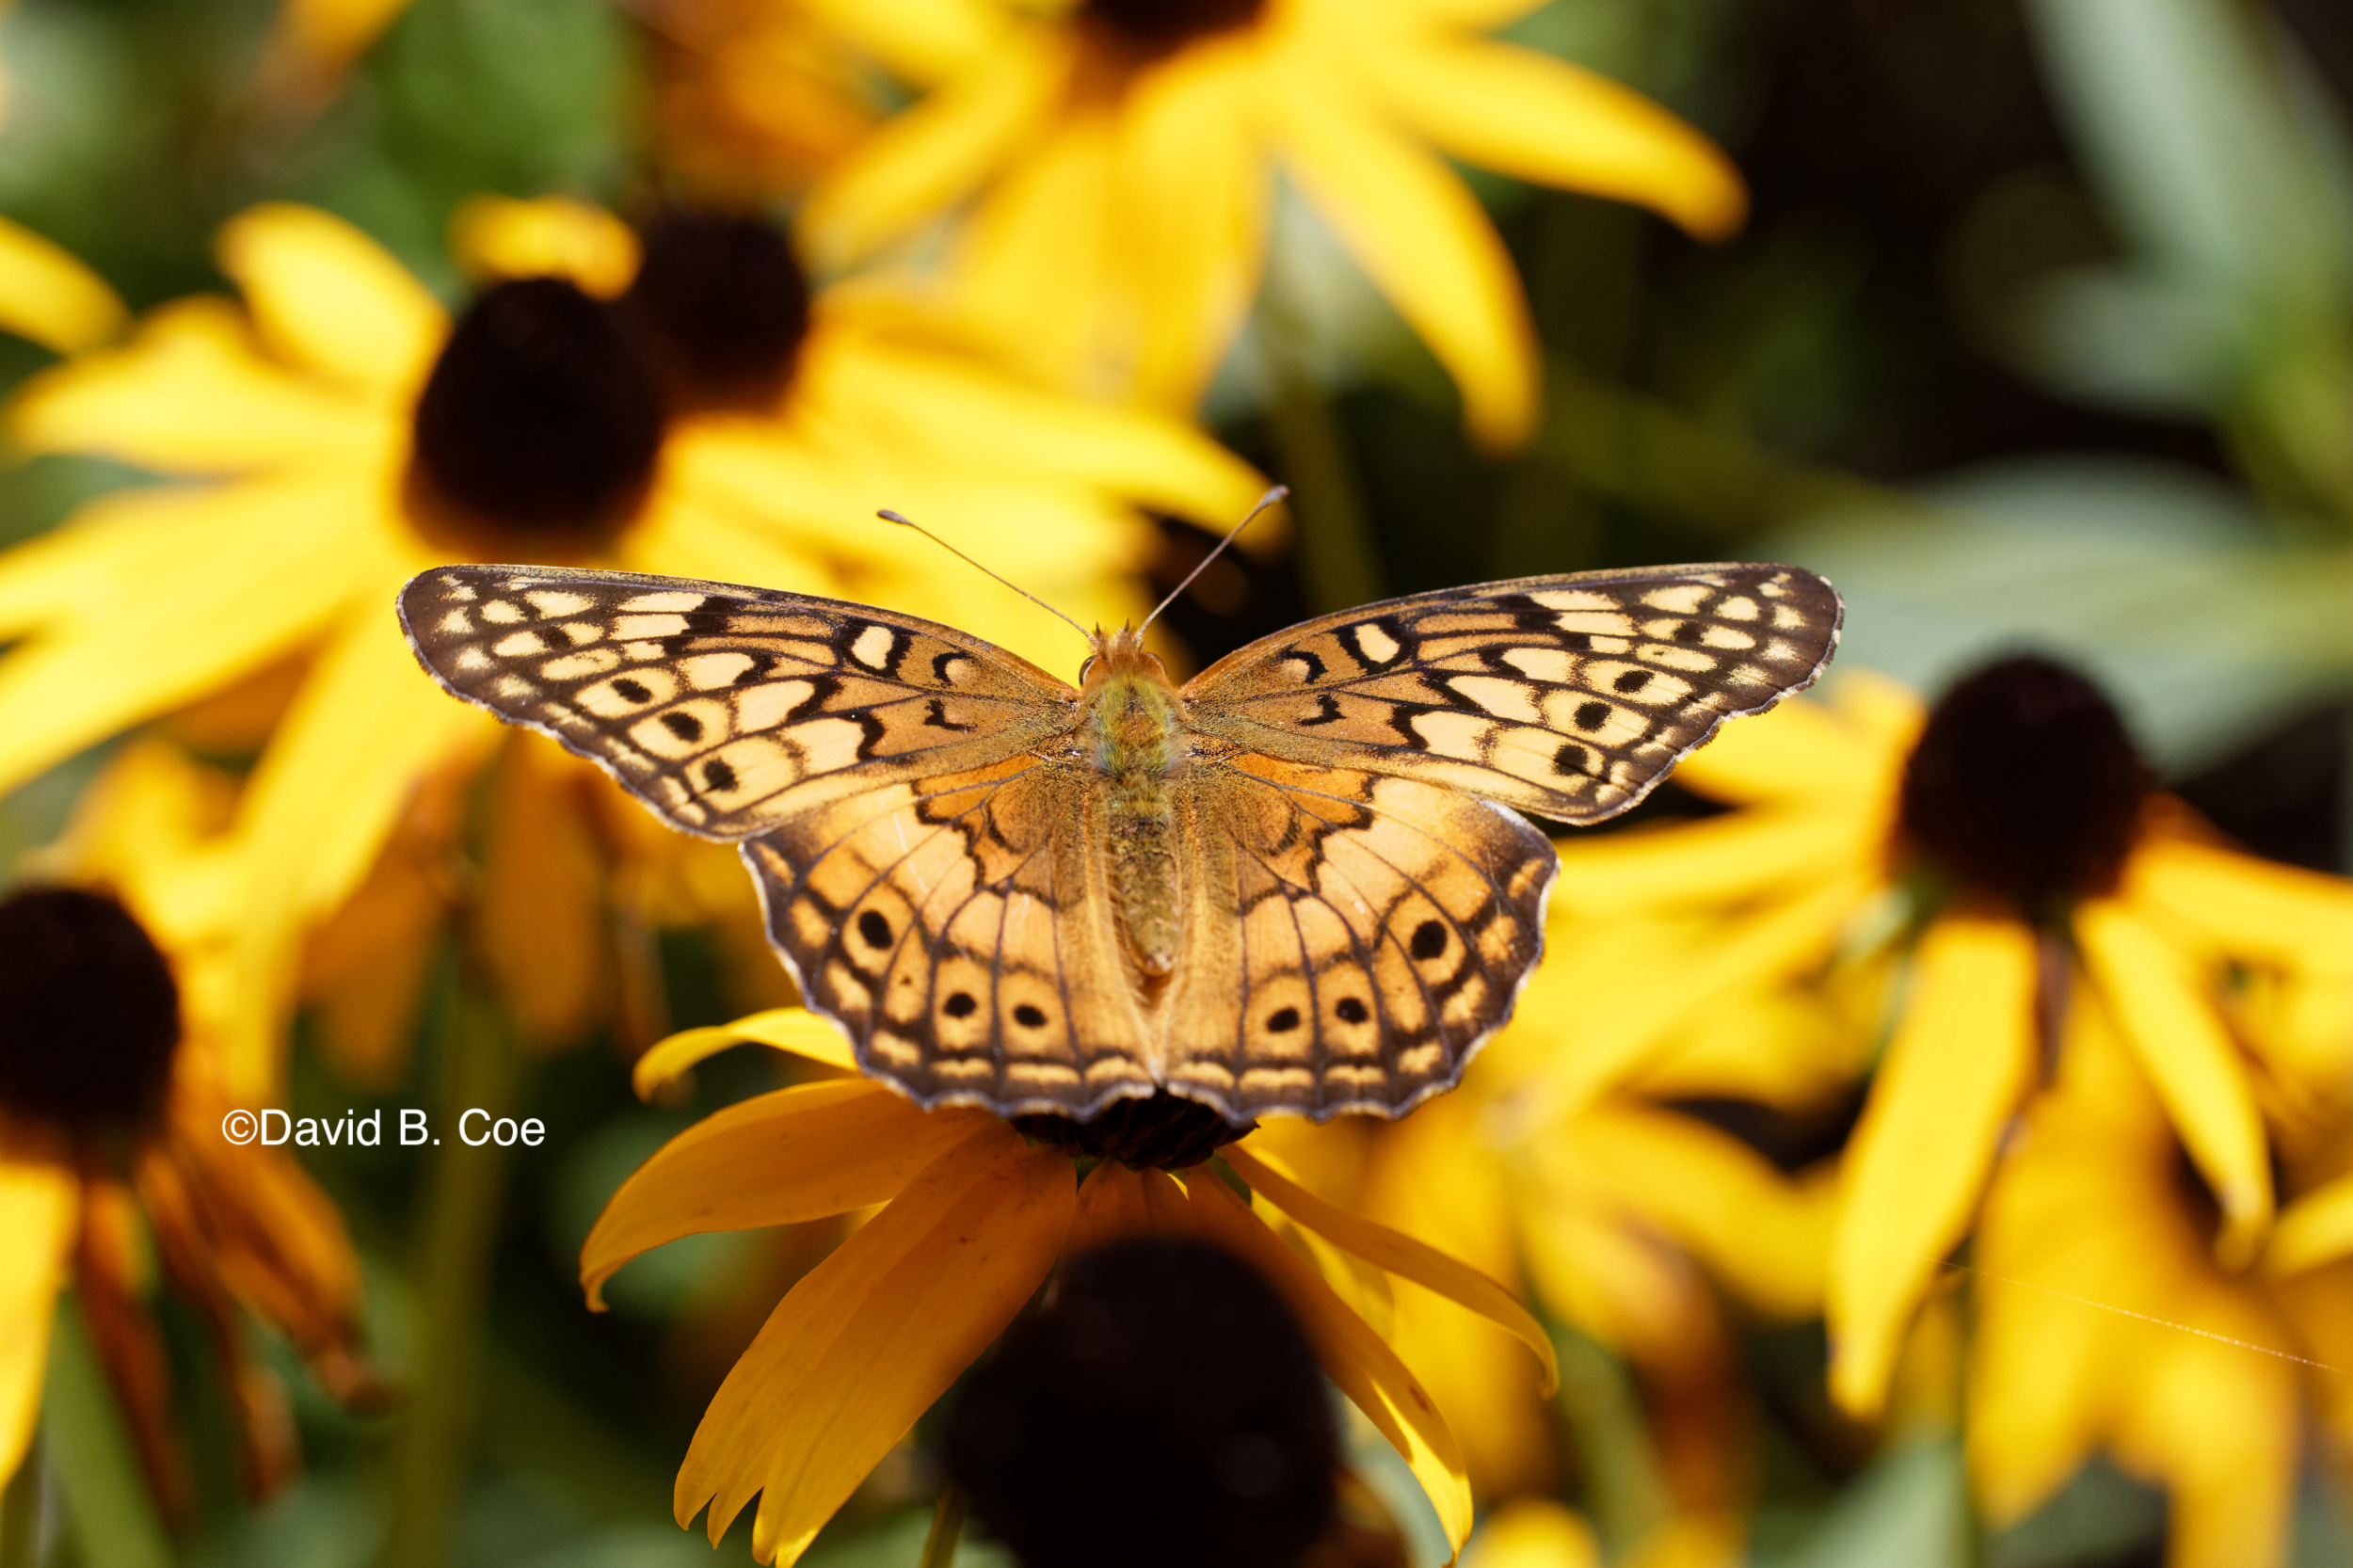 Variegated Fritillary, by David B. Coe